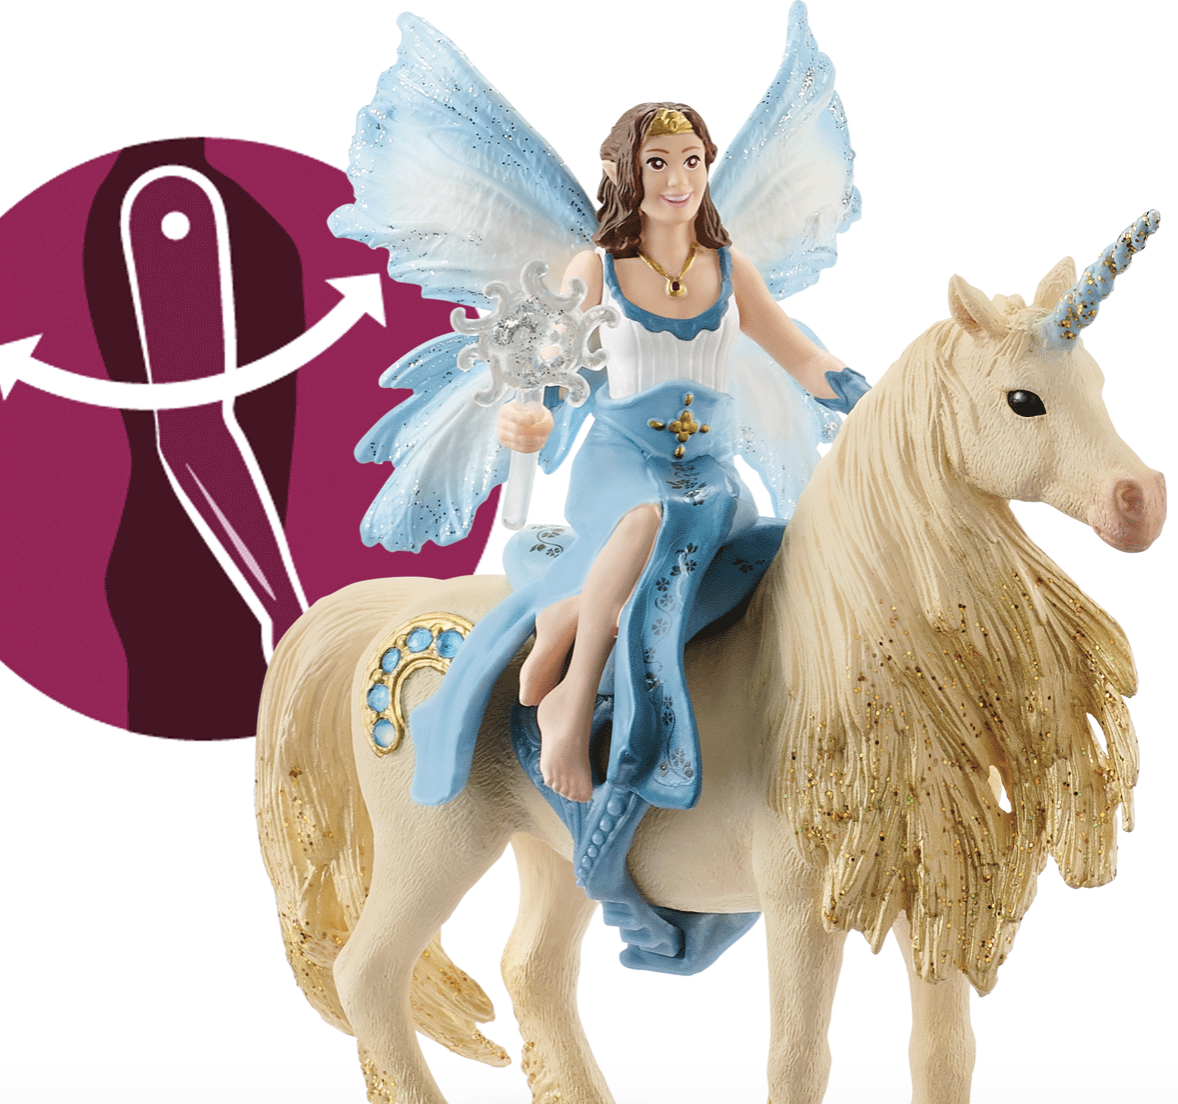 Schleich Eyela Riding on a Golden Unicorn